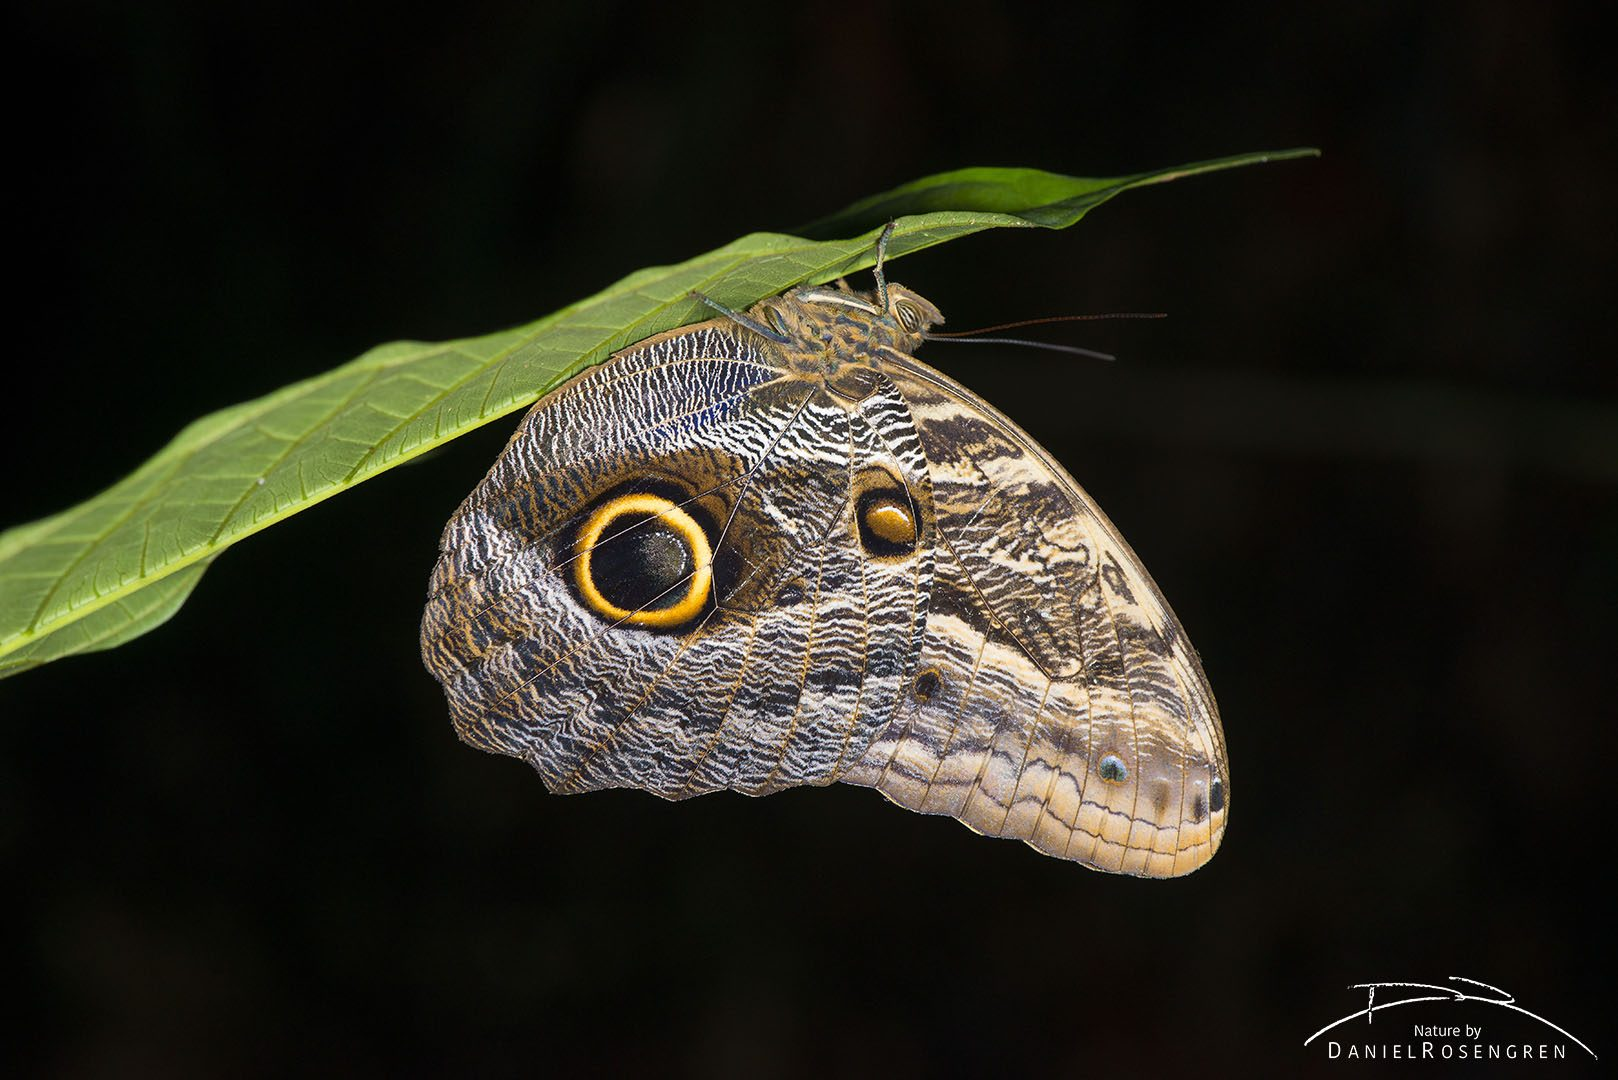 An Owl moth in the Yaguas. © Daniel Rosengren